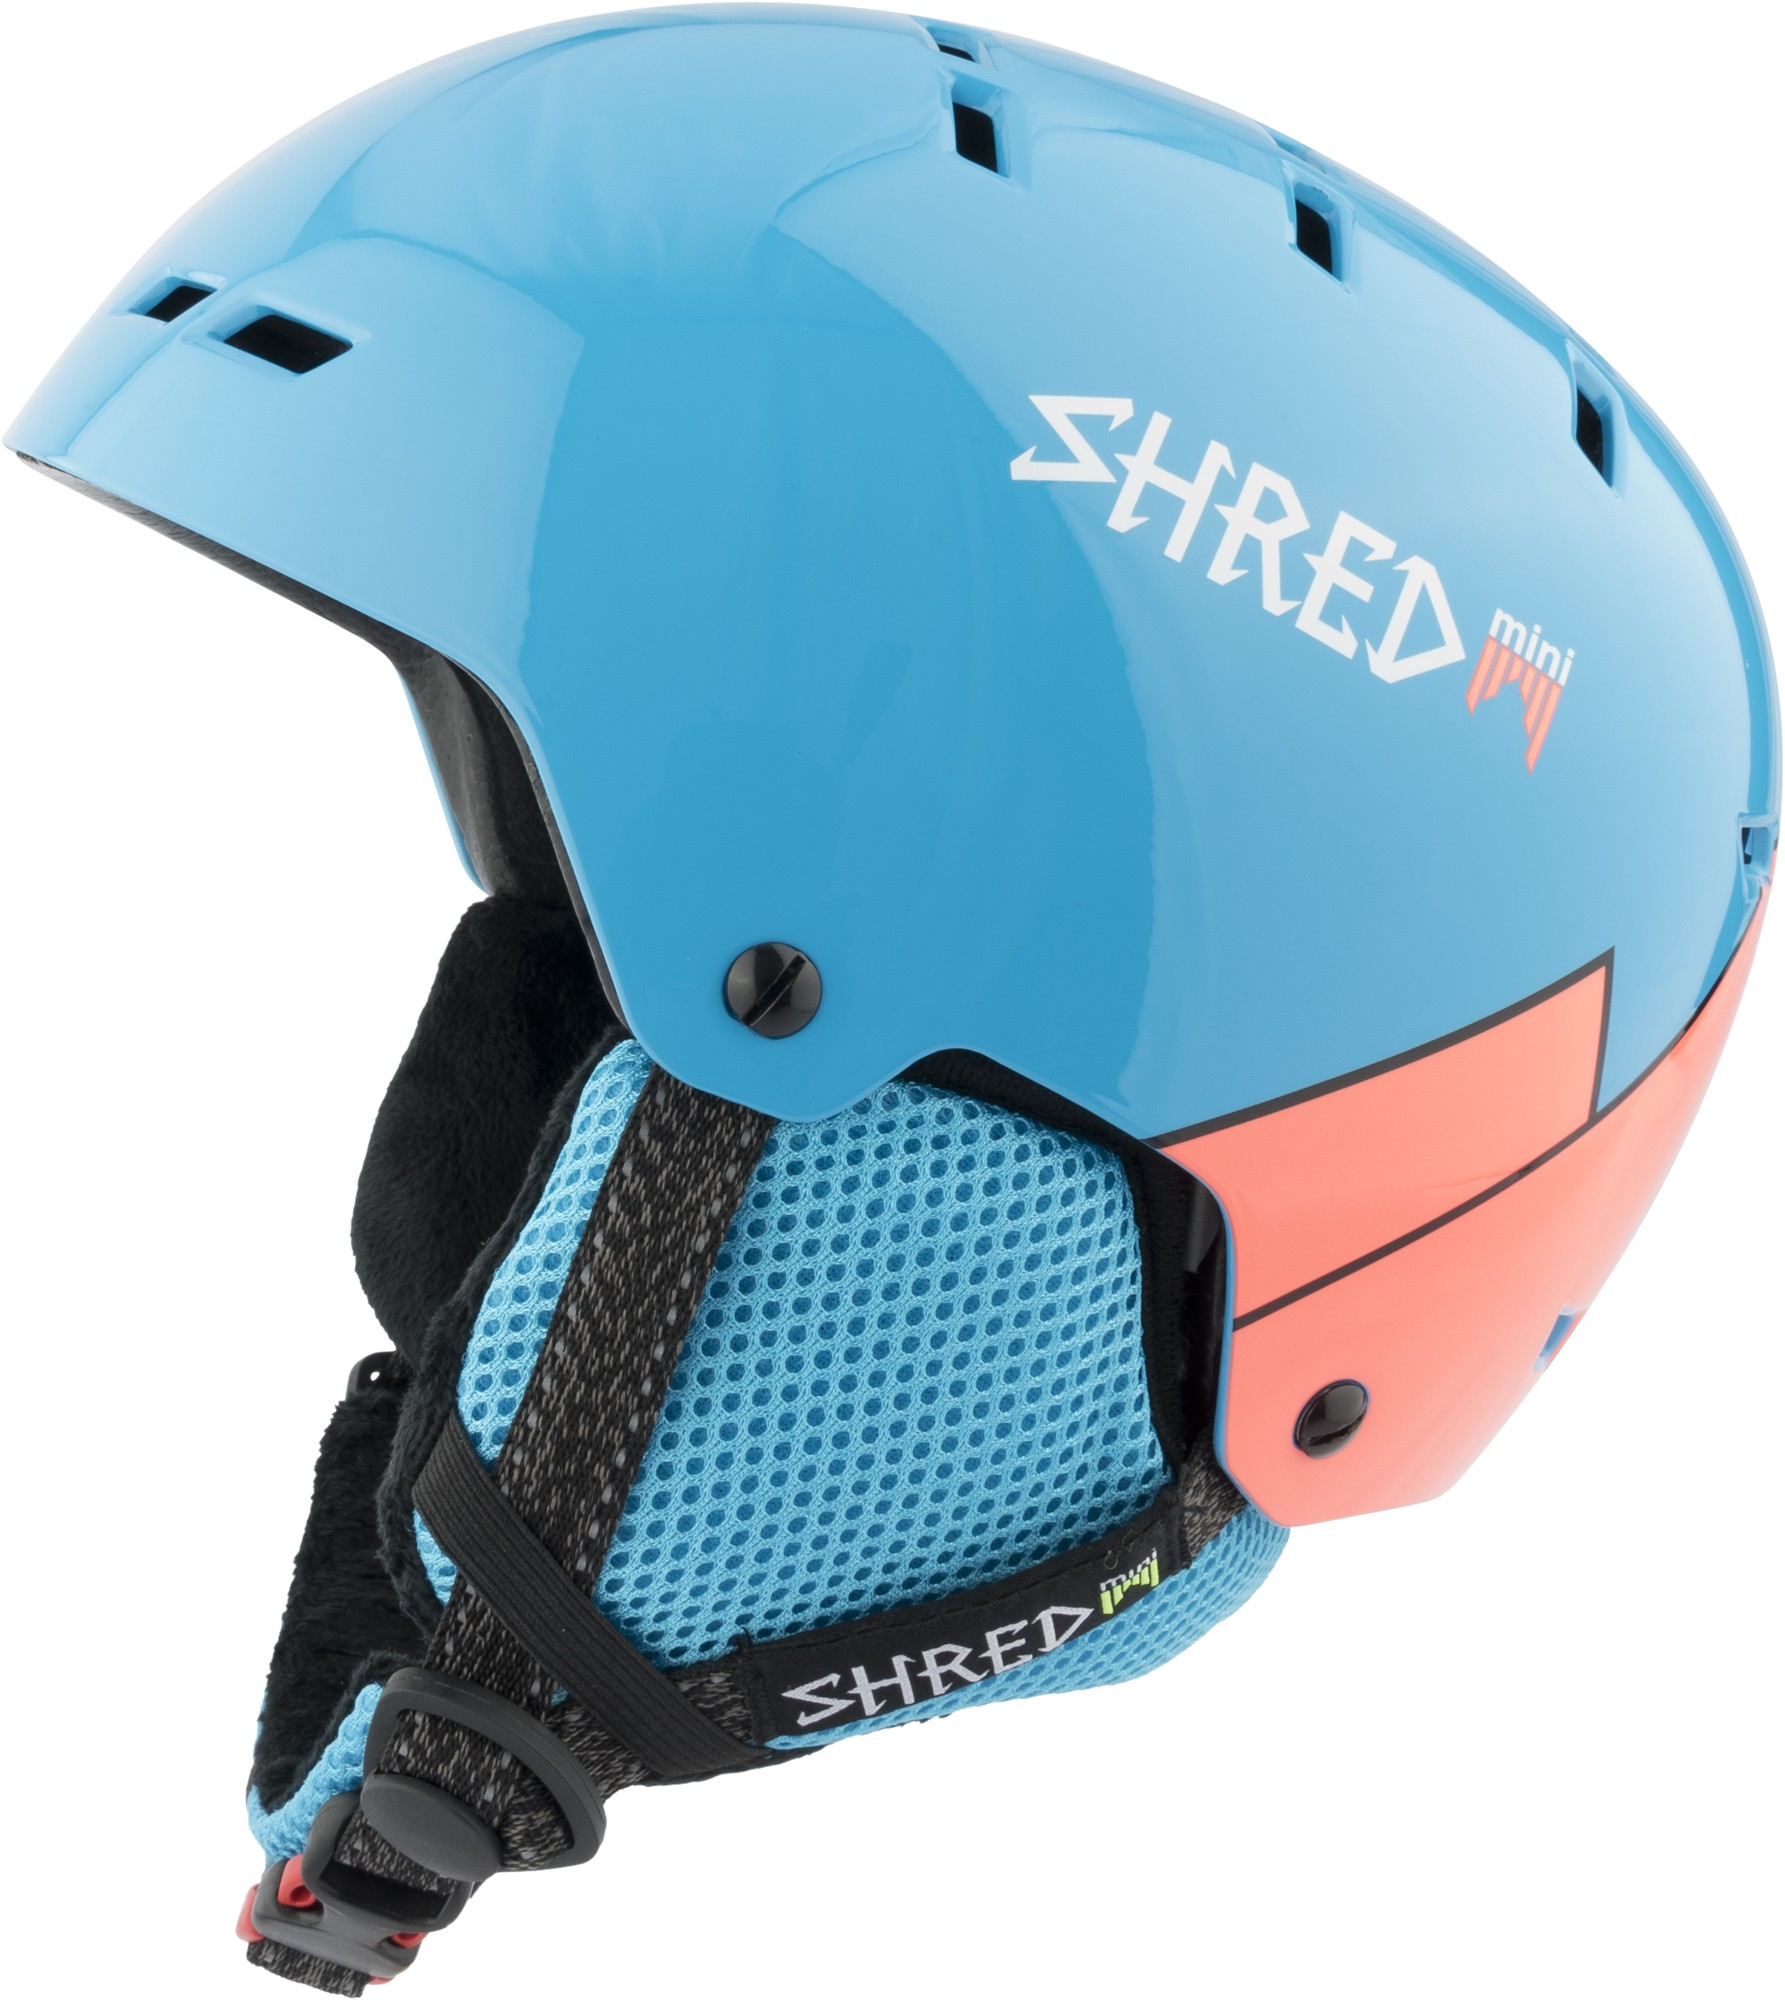 Shred BUMPER warm MINI WEE BLUE/RUST ski helmet, 2017